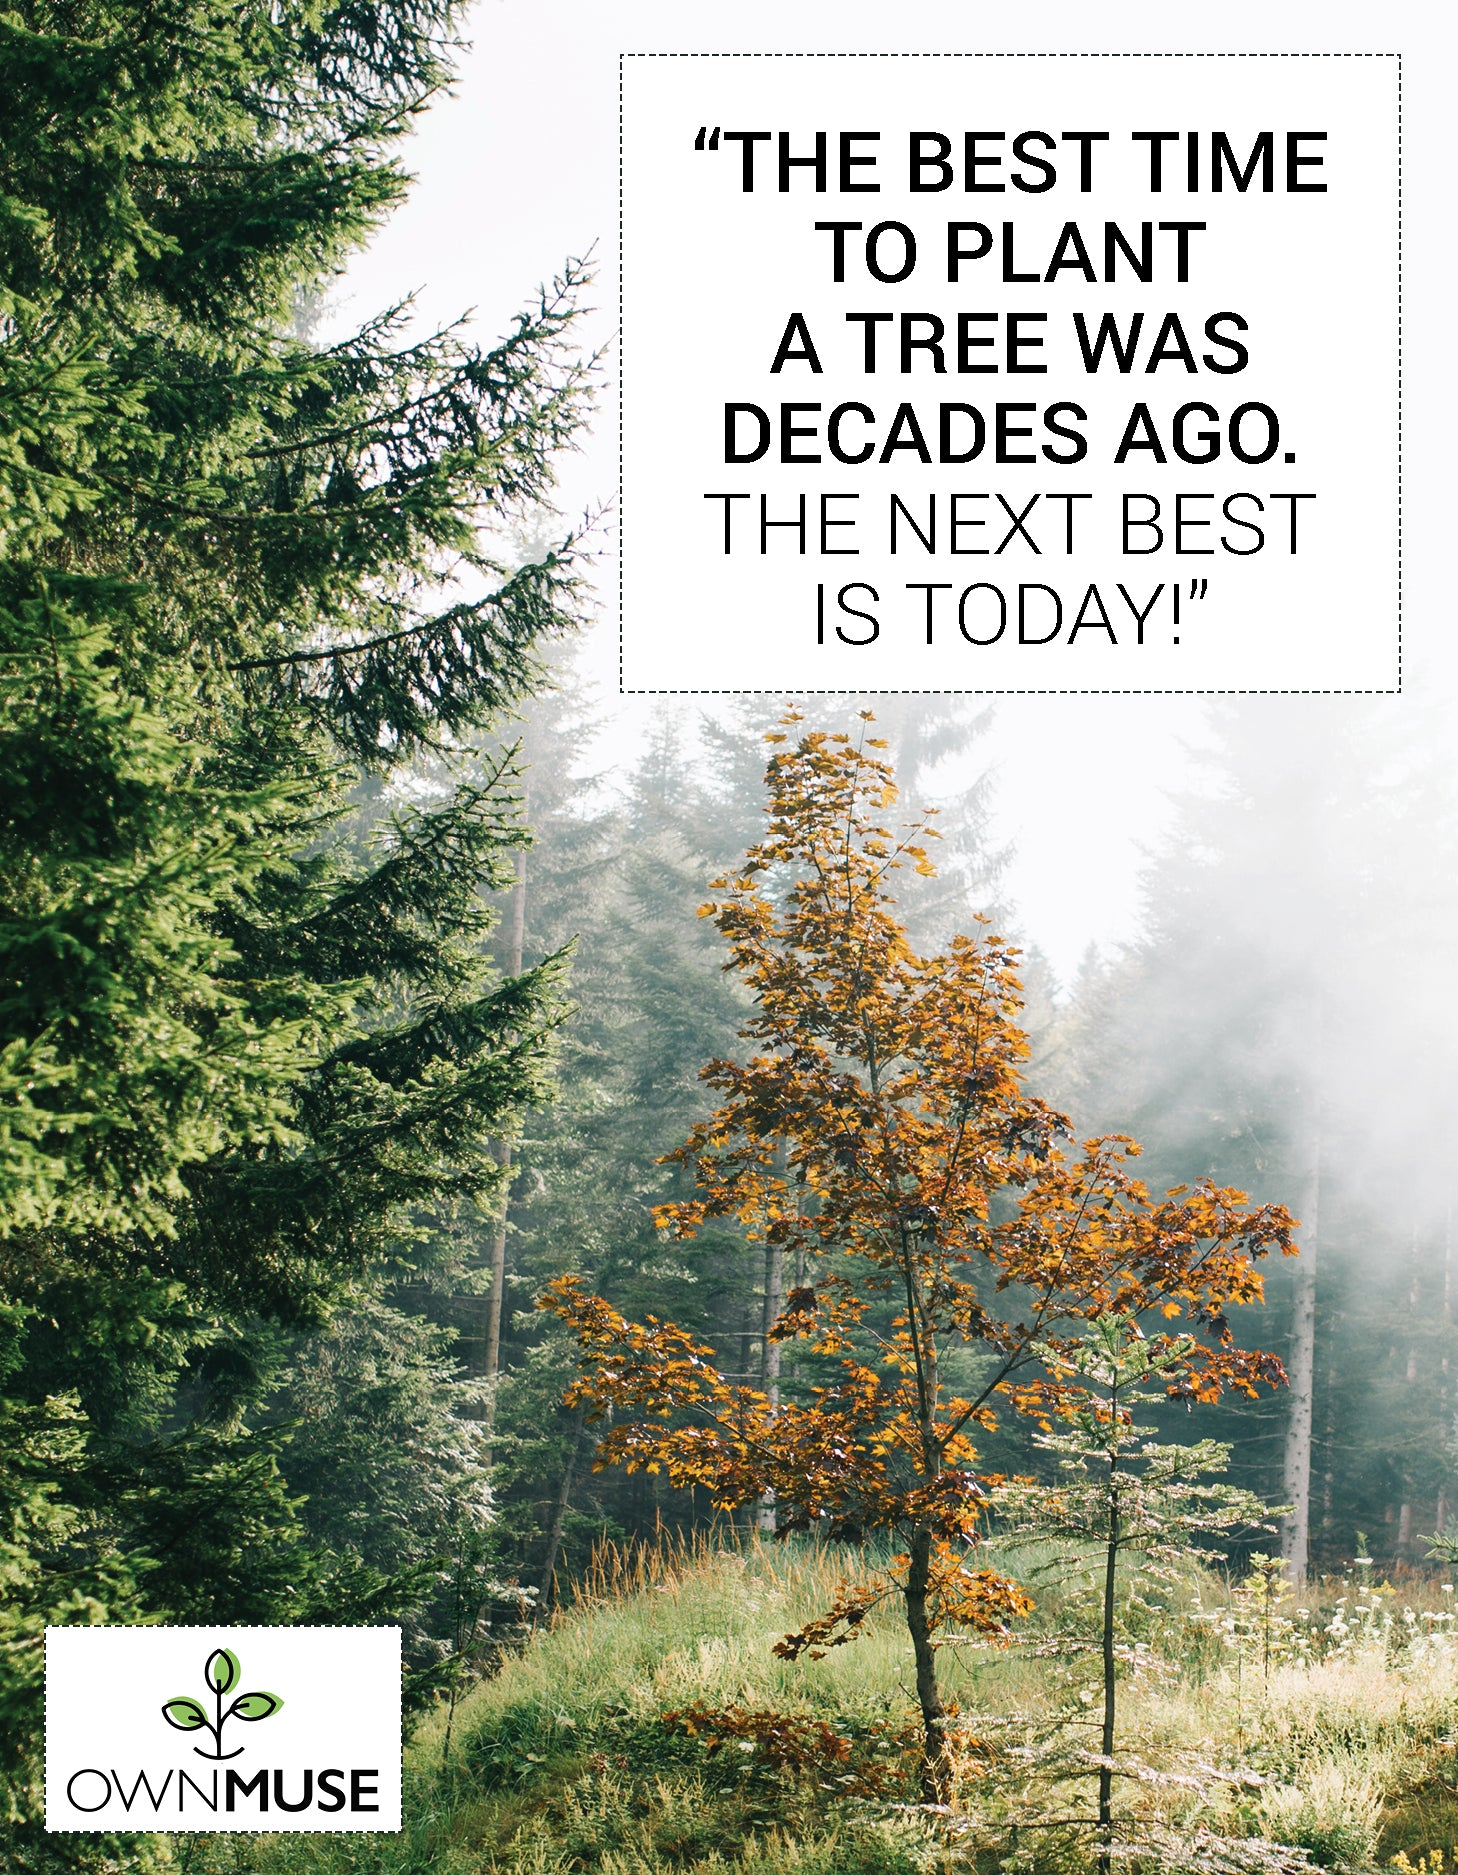 Environmental Quotes: Go Green Sustainable Messages - OwnMuse